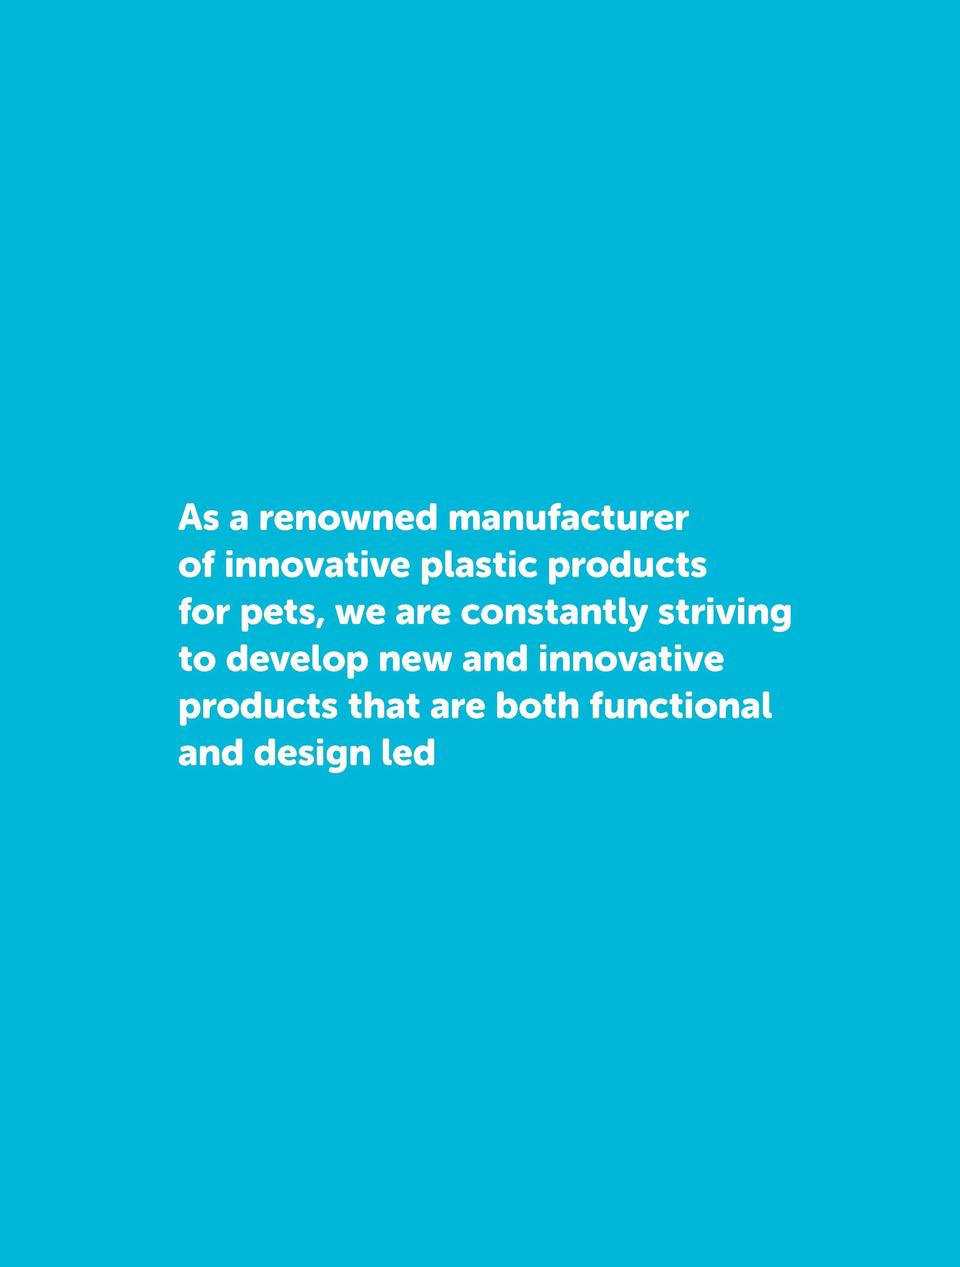 As a renowned manufacturer of innovative plastic products for pets, we are constantly striving to develop new and innovati...